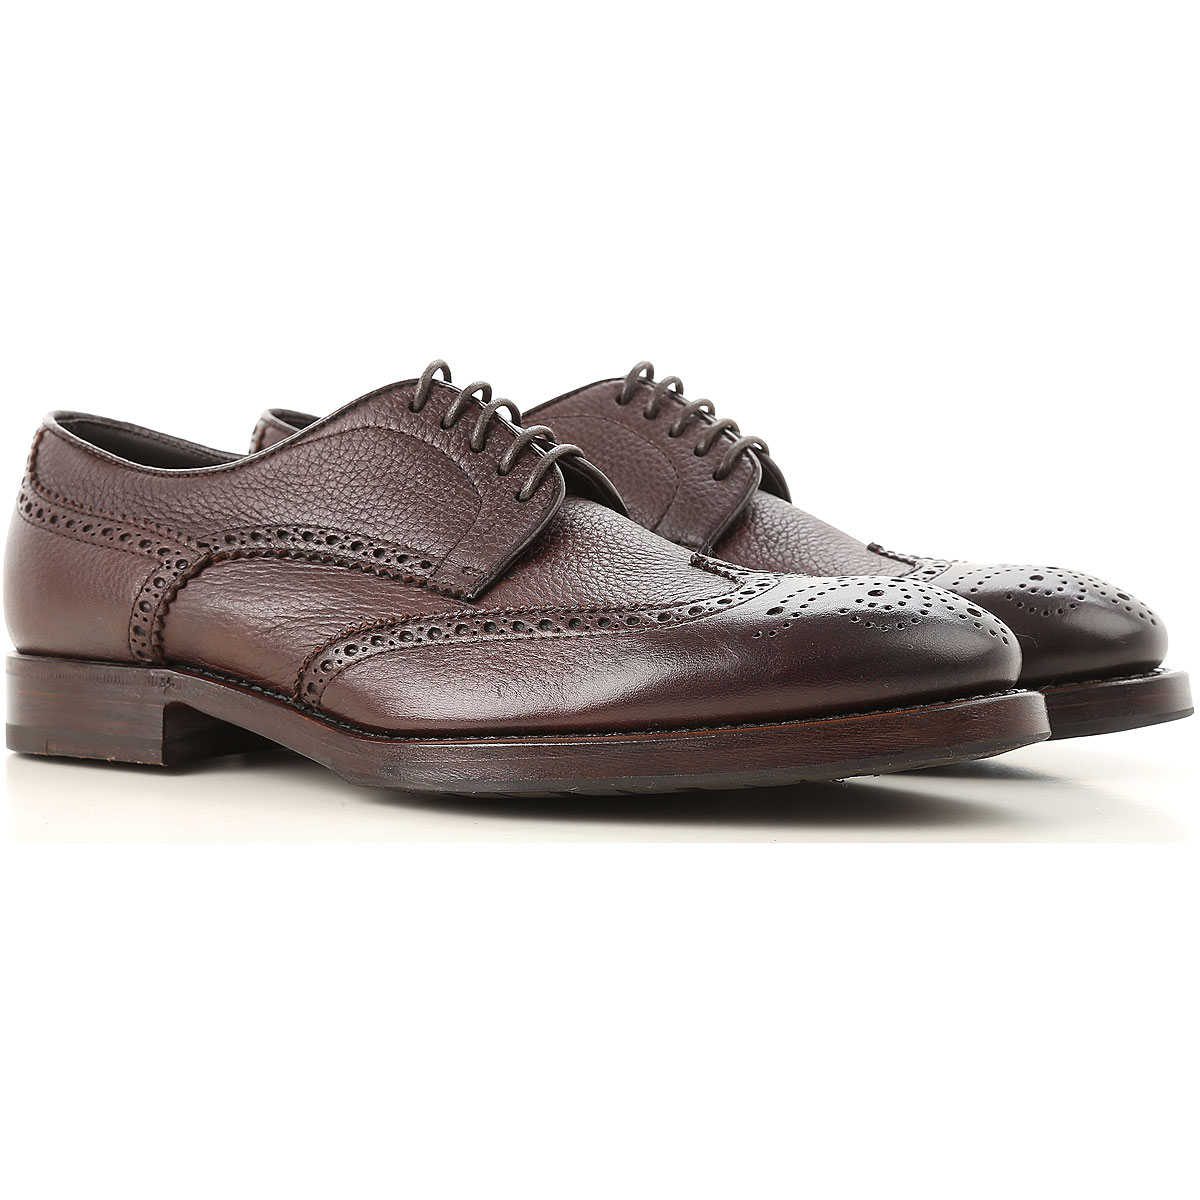 Henderson Lace Up Shoes for Men Oxfords Derbies and Brogues On Sale SE - GOOFASH